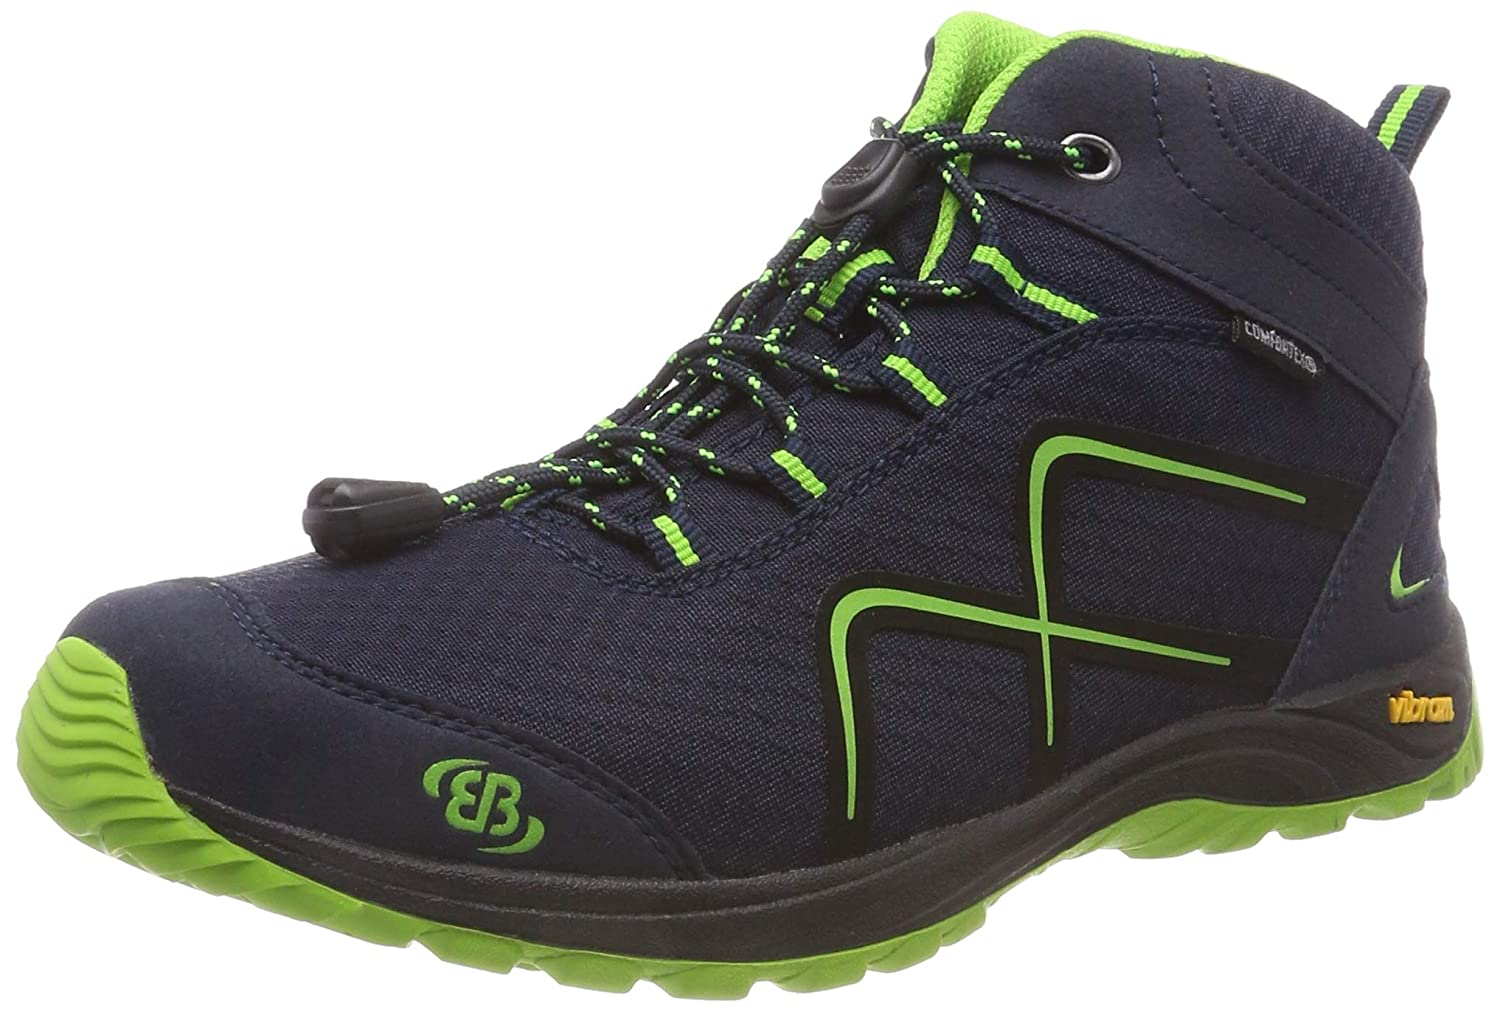 Bruetting Herren Guide High Trekking-& Wanderstiefel